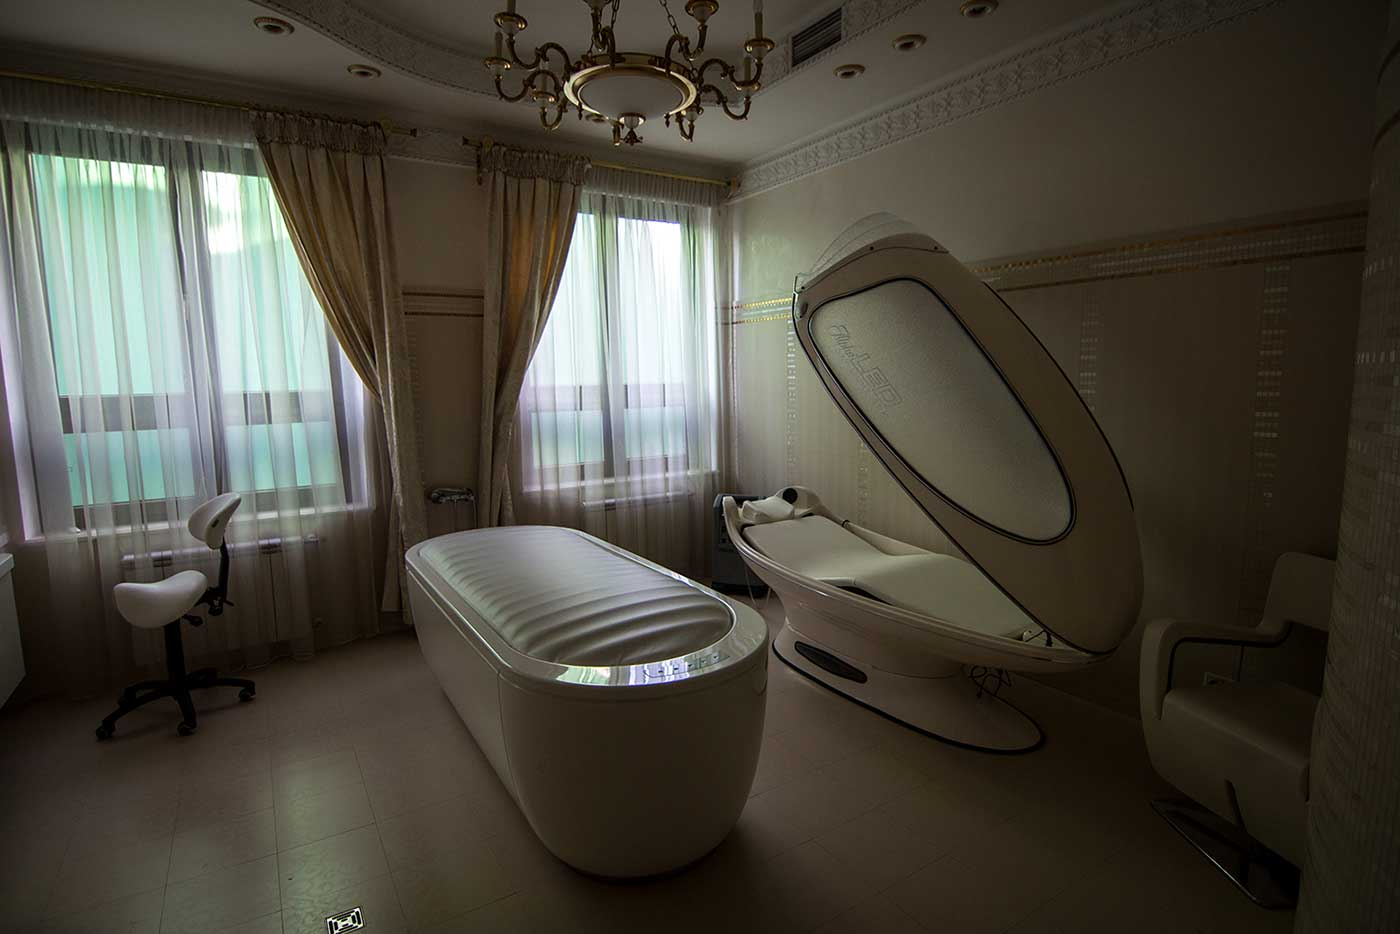 A tanning bed in the wellness complex. Mezhyhirya, Ukraine.